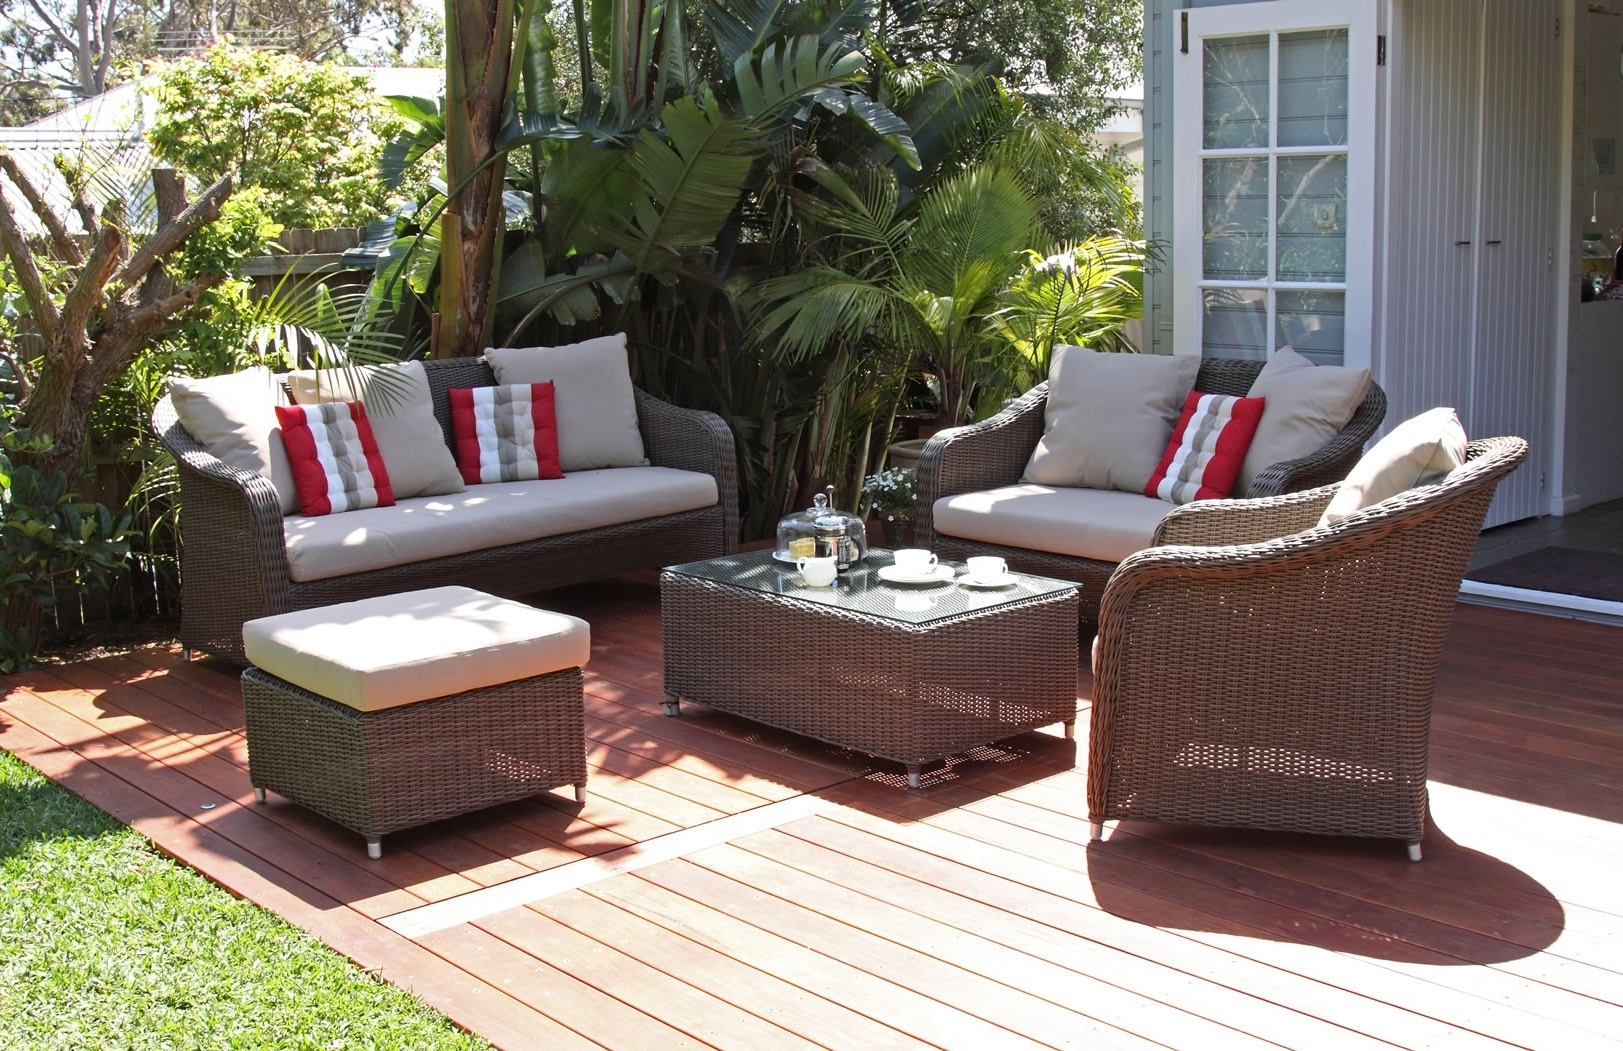 Well Known Chaise Lounge Sets For Lounge Chair : In Pool Chaise Lounge Chairs Bistro Patio Furniture (View 14 of 15)